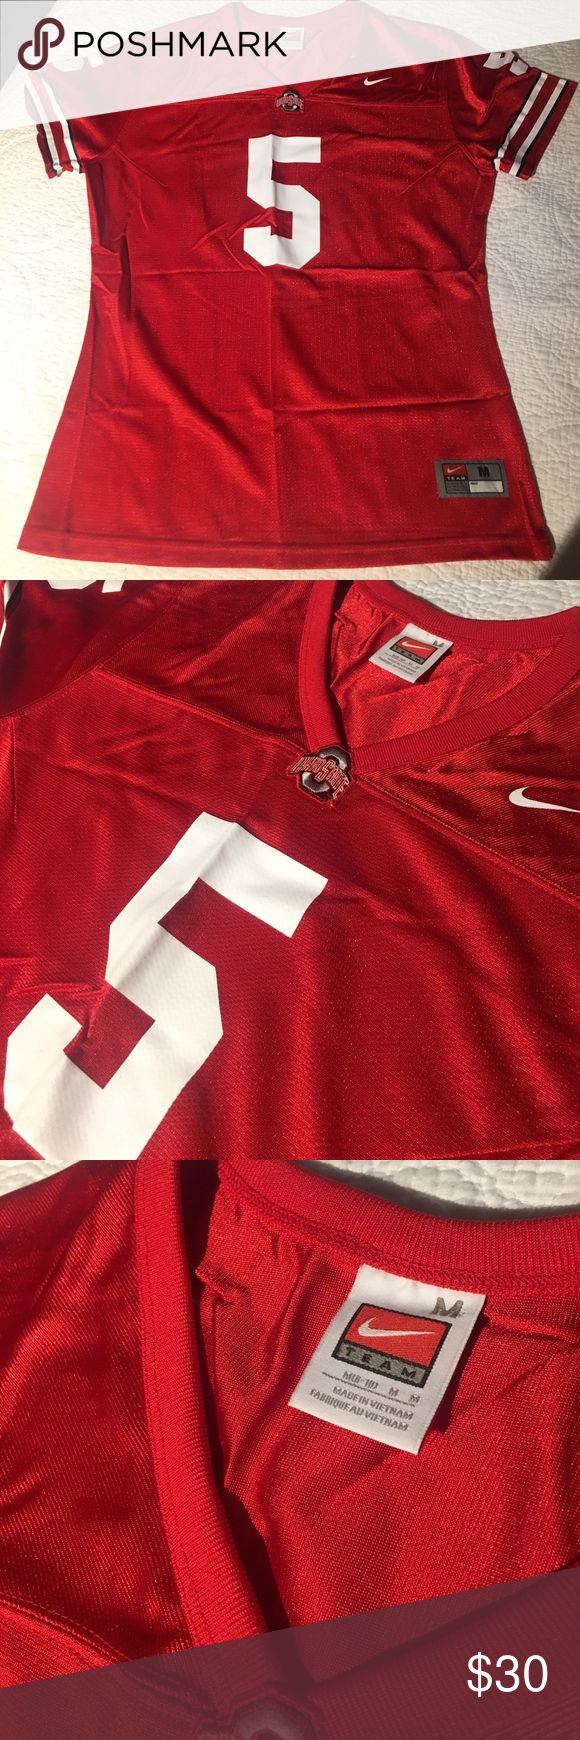 Nike Ohio State football jersey. Womens. Size M. Nike Womens Ohio State University football jersey. Size M. Excellent condition. Nike Other